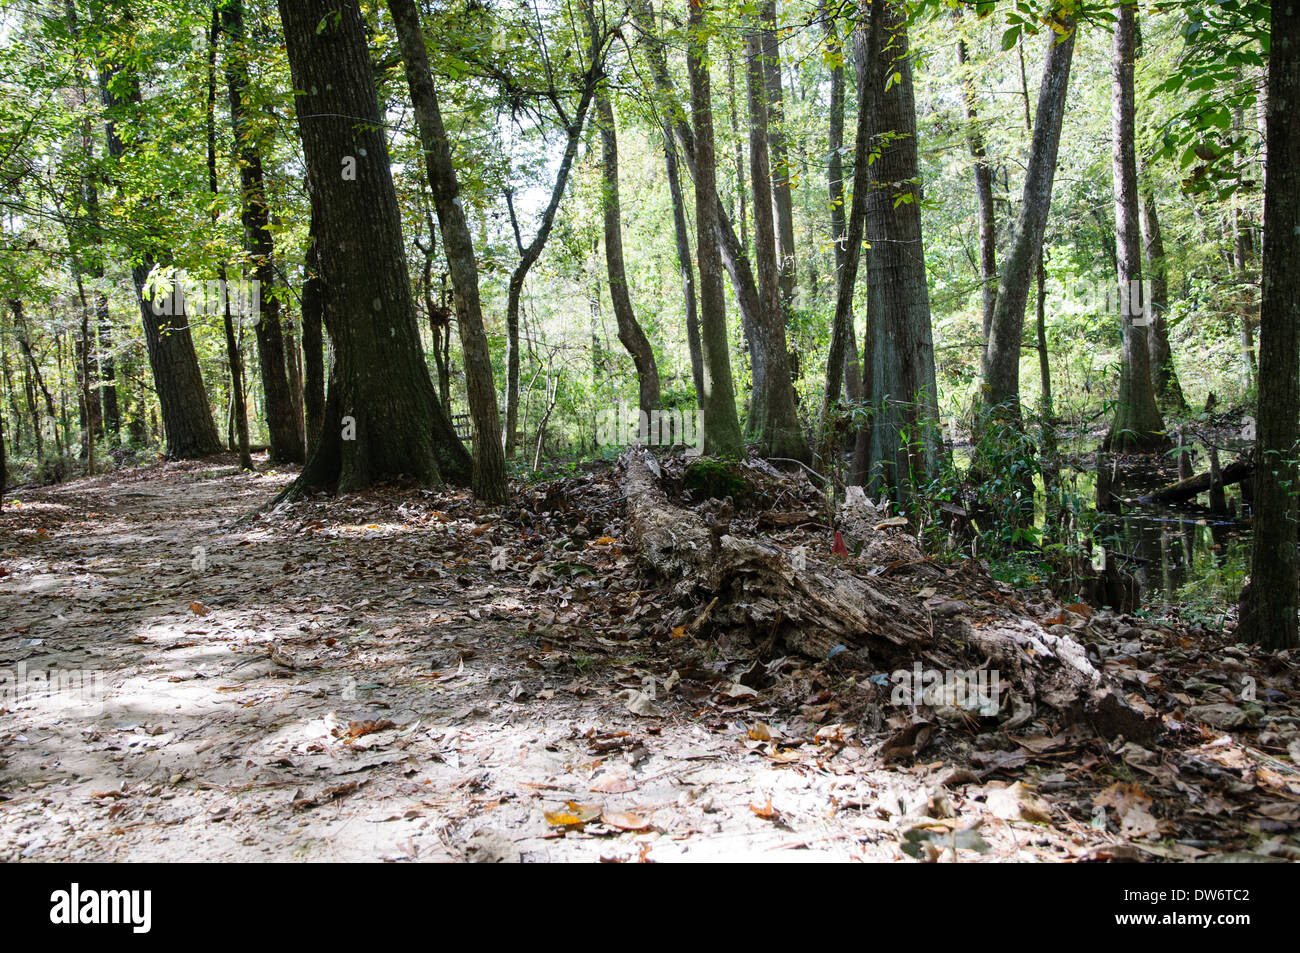 Landscape of of the under story vegetation of a swamp in along the Natchez Trace in Mississippi - Stock Image